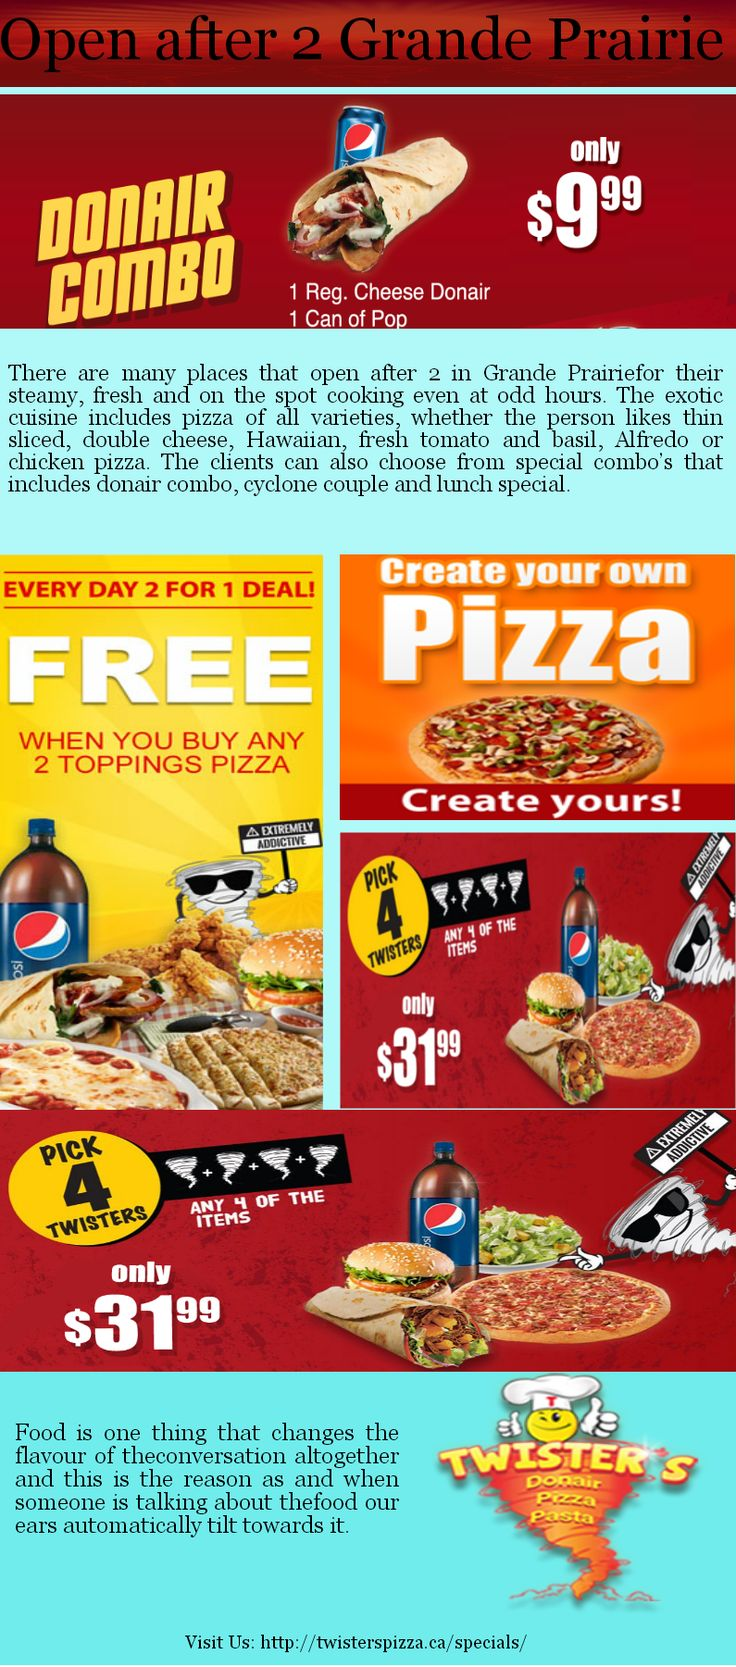 Find a late night pizza delivery restaurant in grande prairie. You can also order late for fast food service or buy directly from restaurant because it's open after 2 in Grande Prairie.